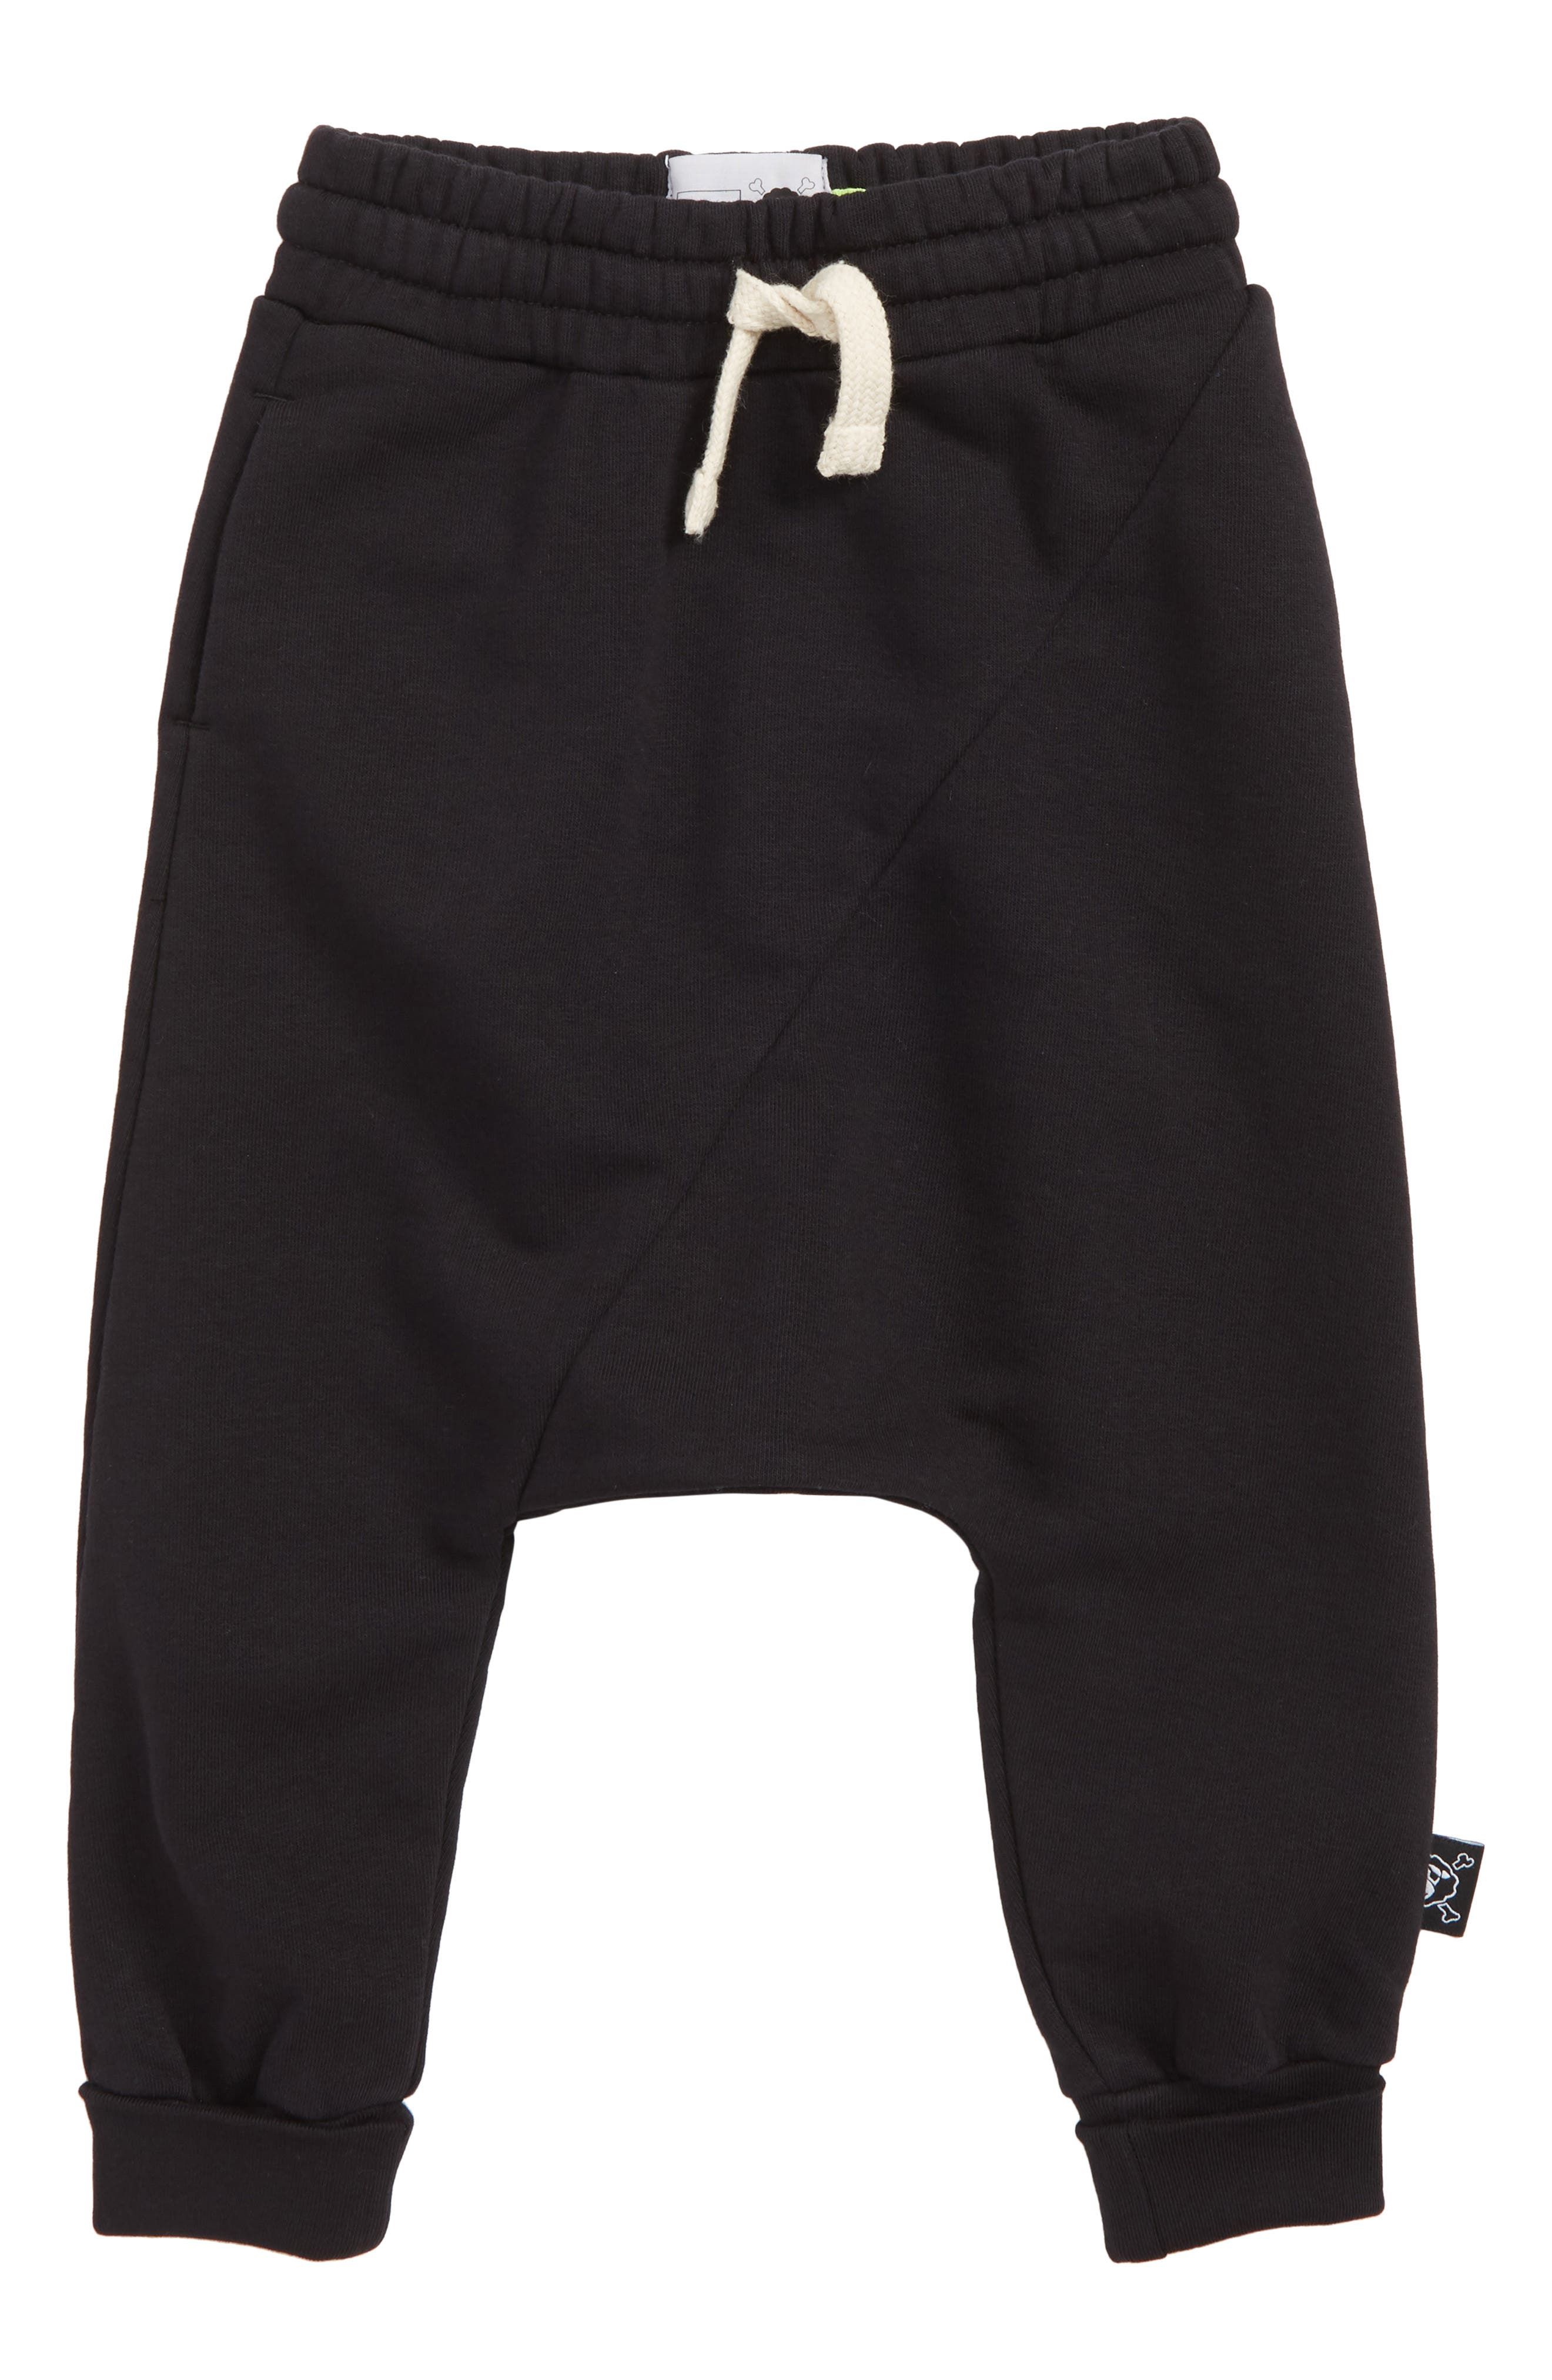 Diagonal Sweatpants,                             Main thumbnail 1, color,                             001